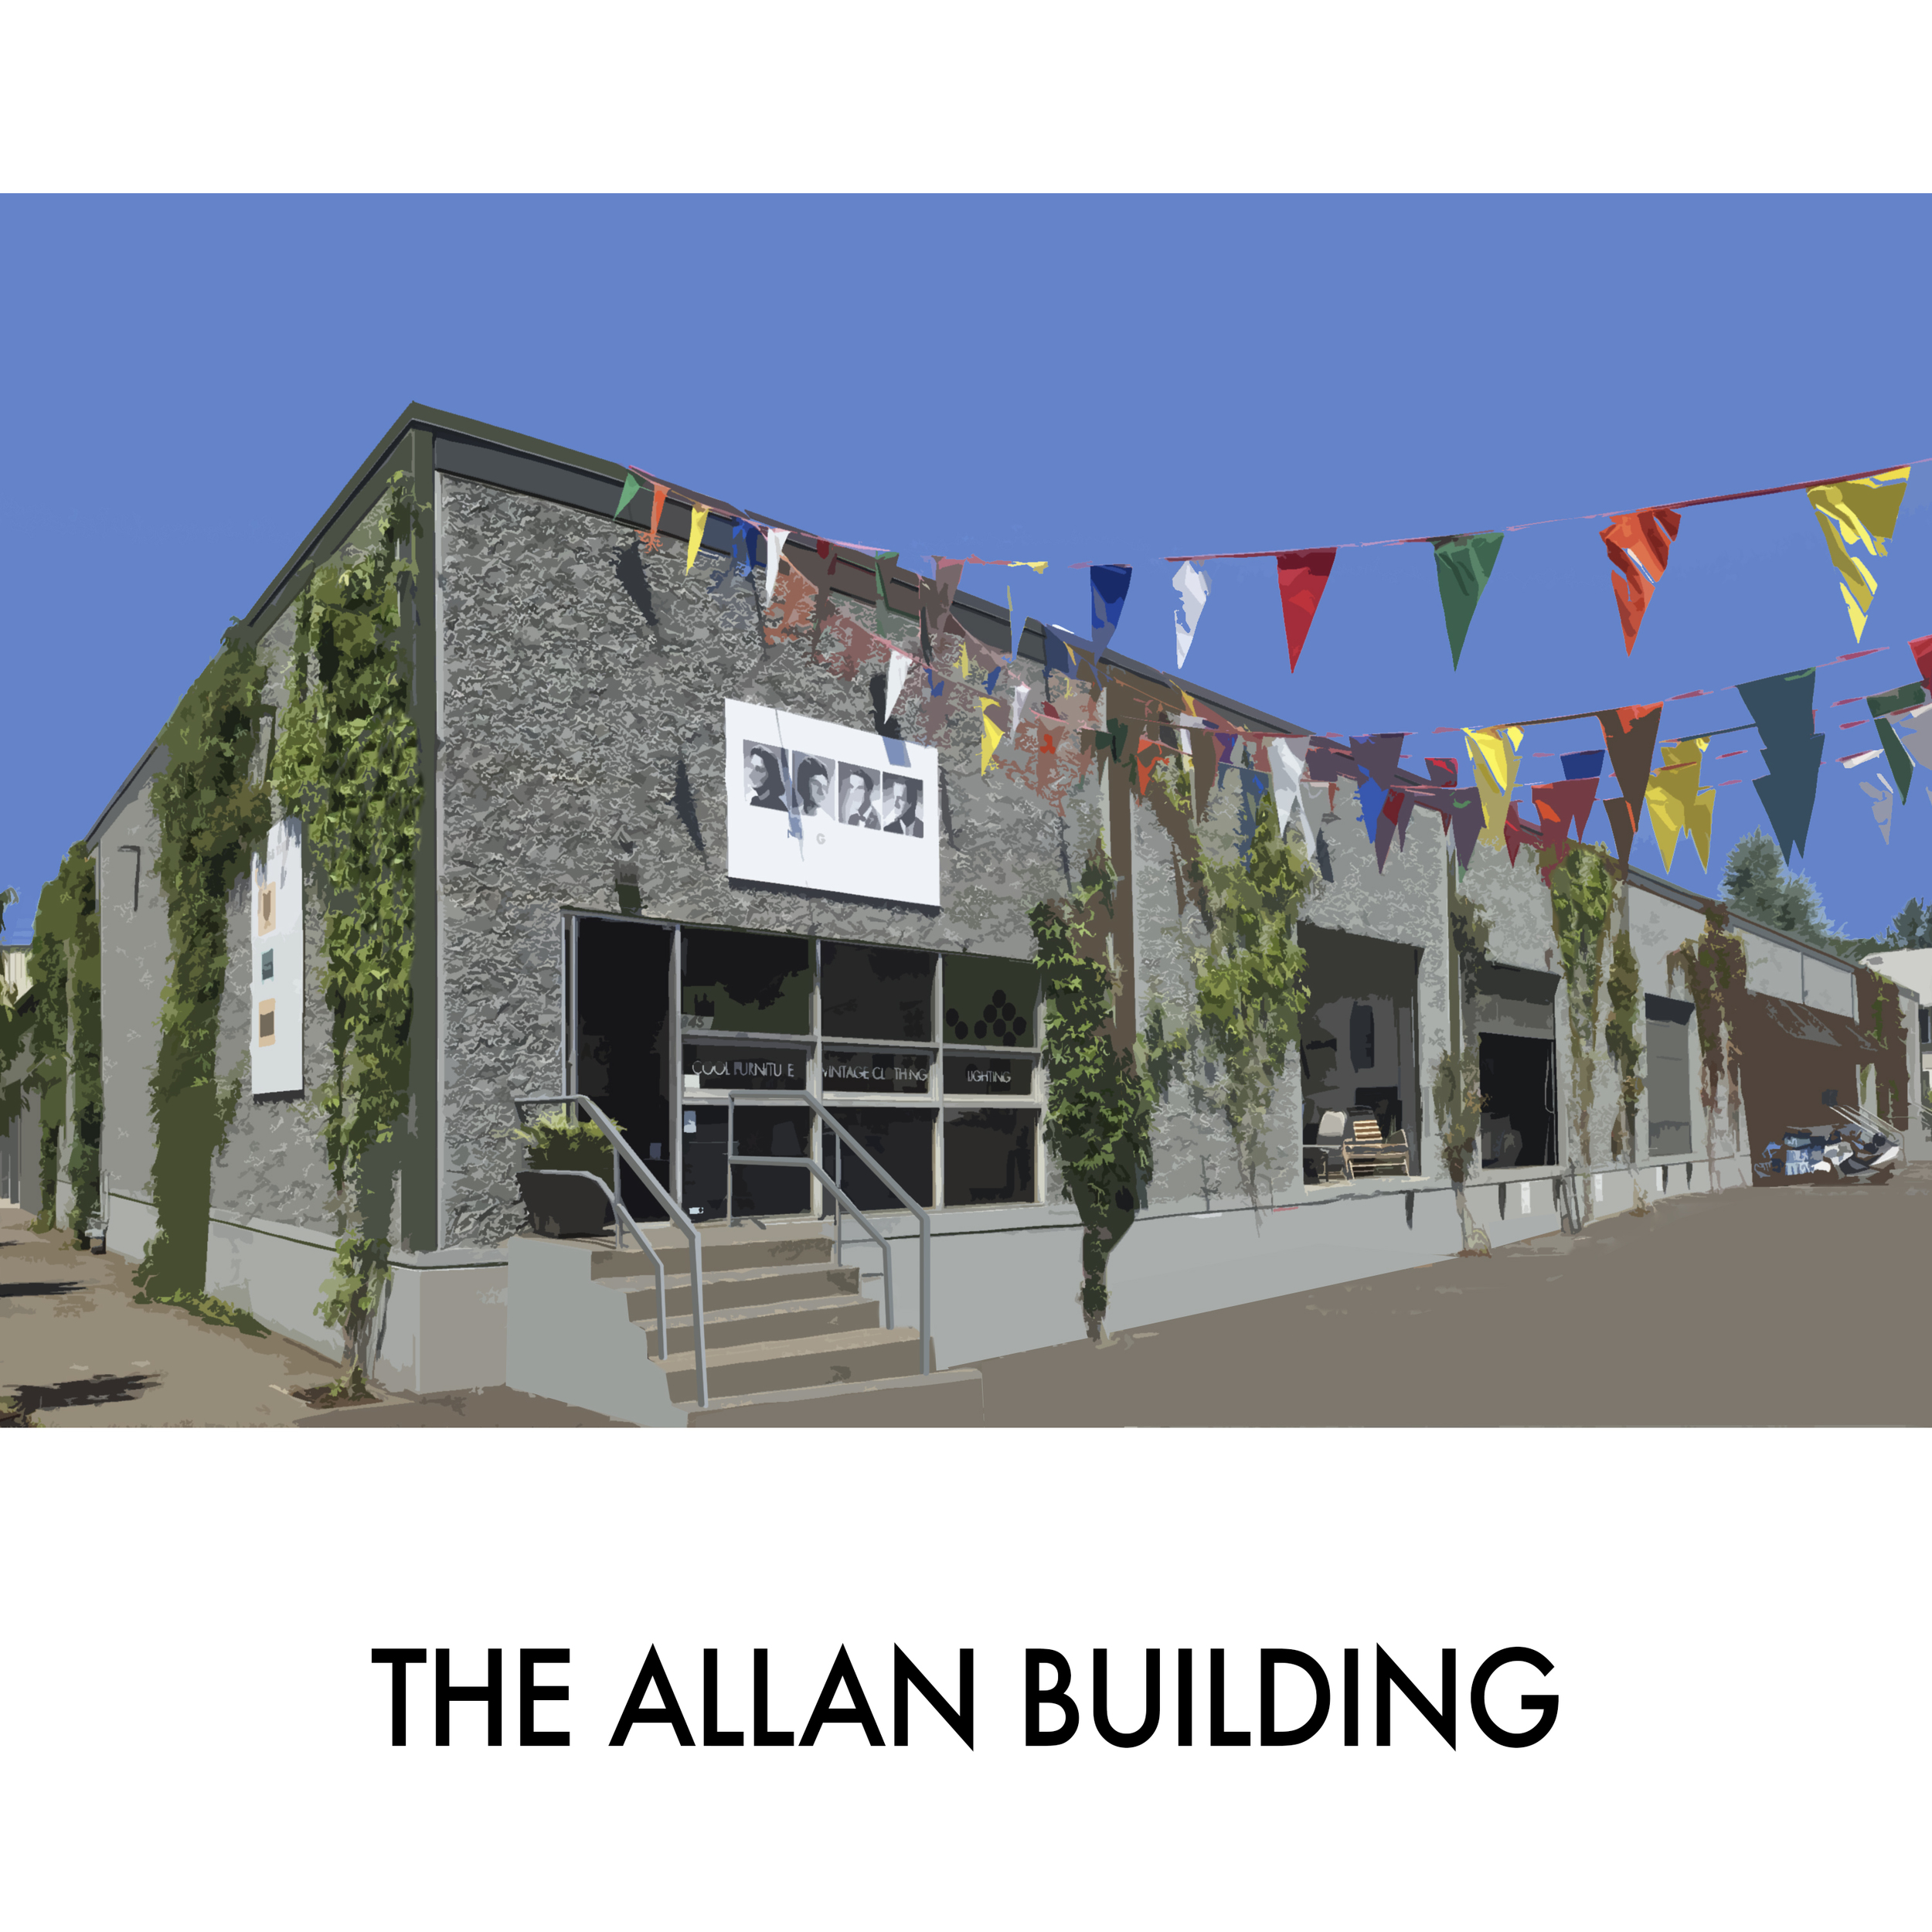 theALLANbuilding_frontpage.jpg